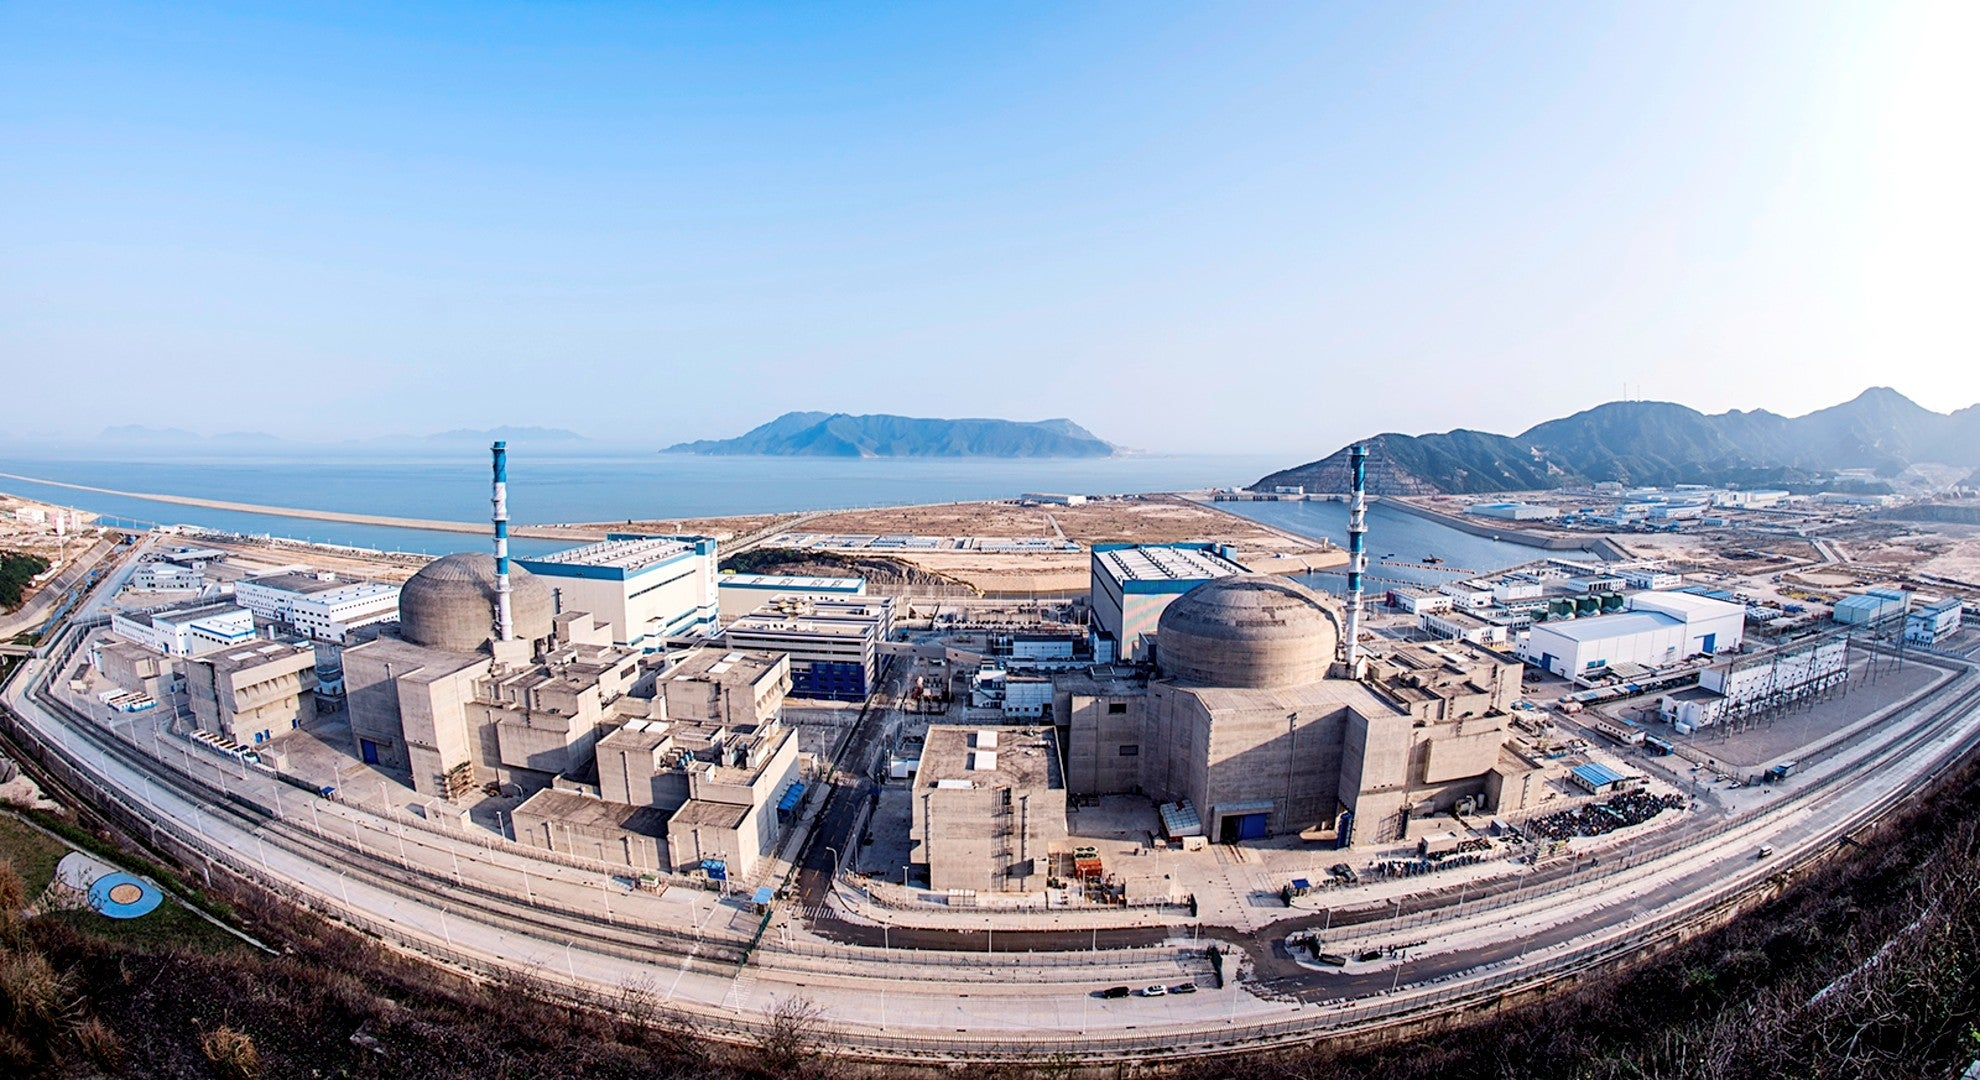 Global Concerns And Questions Grow As China Admits Fuel Rods At Nuclear Plant Are Damaged